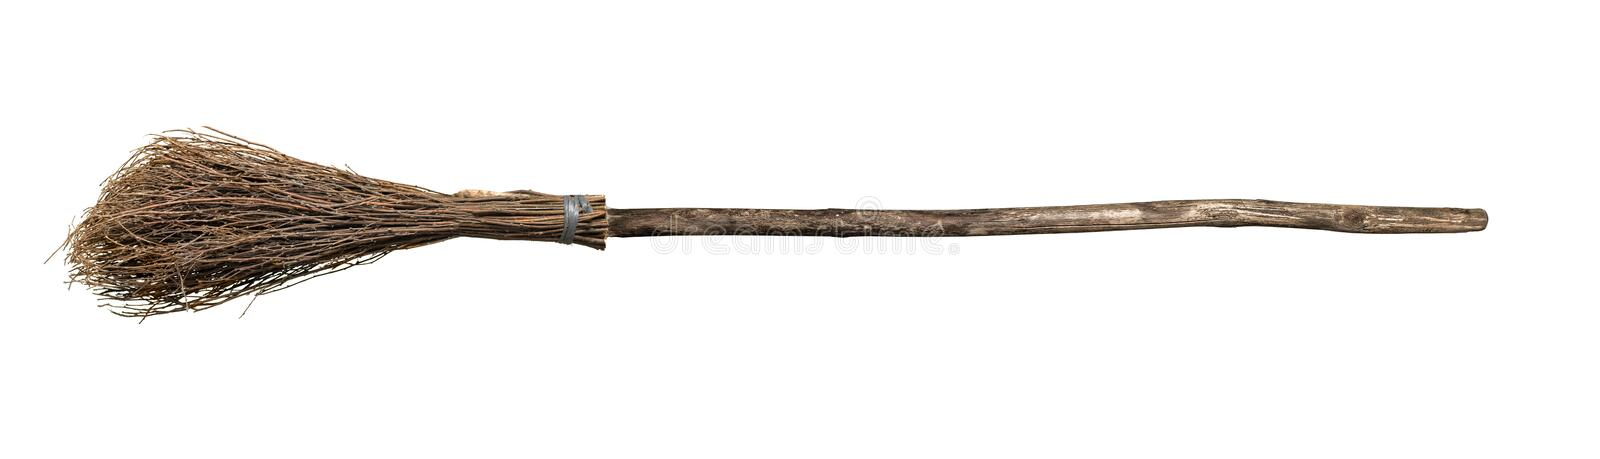 Broom from rods with wooden handle. Isolate on white background royalty free stock images